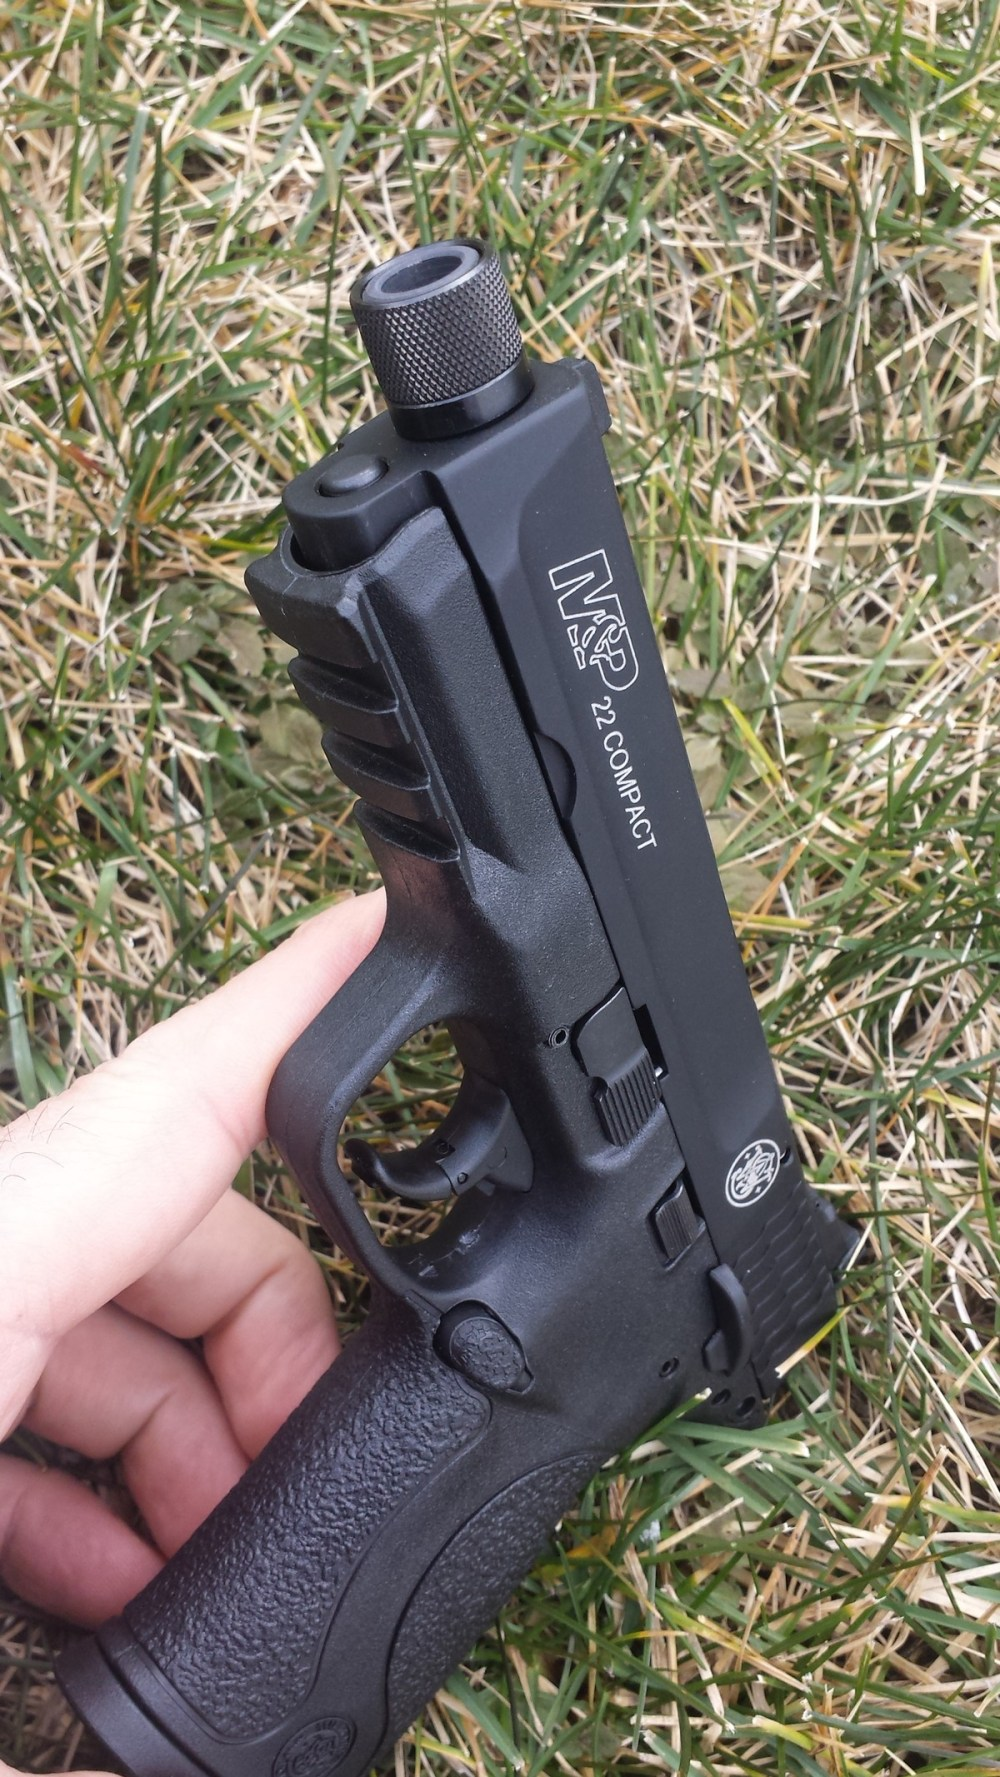 medium resolution of other features of the m p 22 compact include and 1913 rail reversible magazine release ambidextrous manual thumb safety and a interior trigger lock